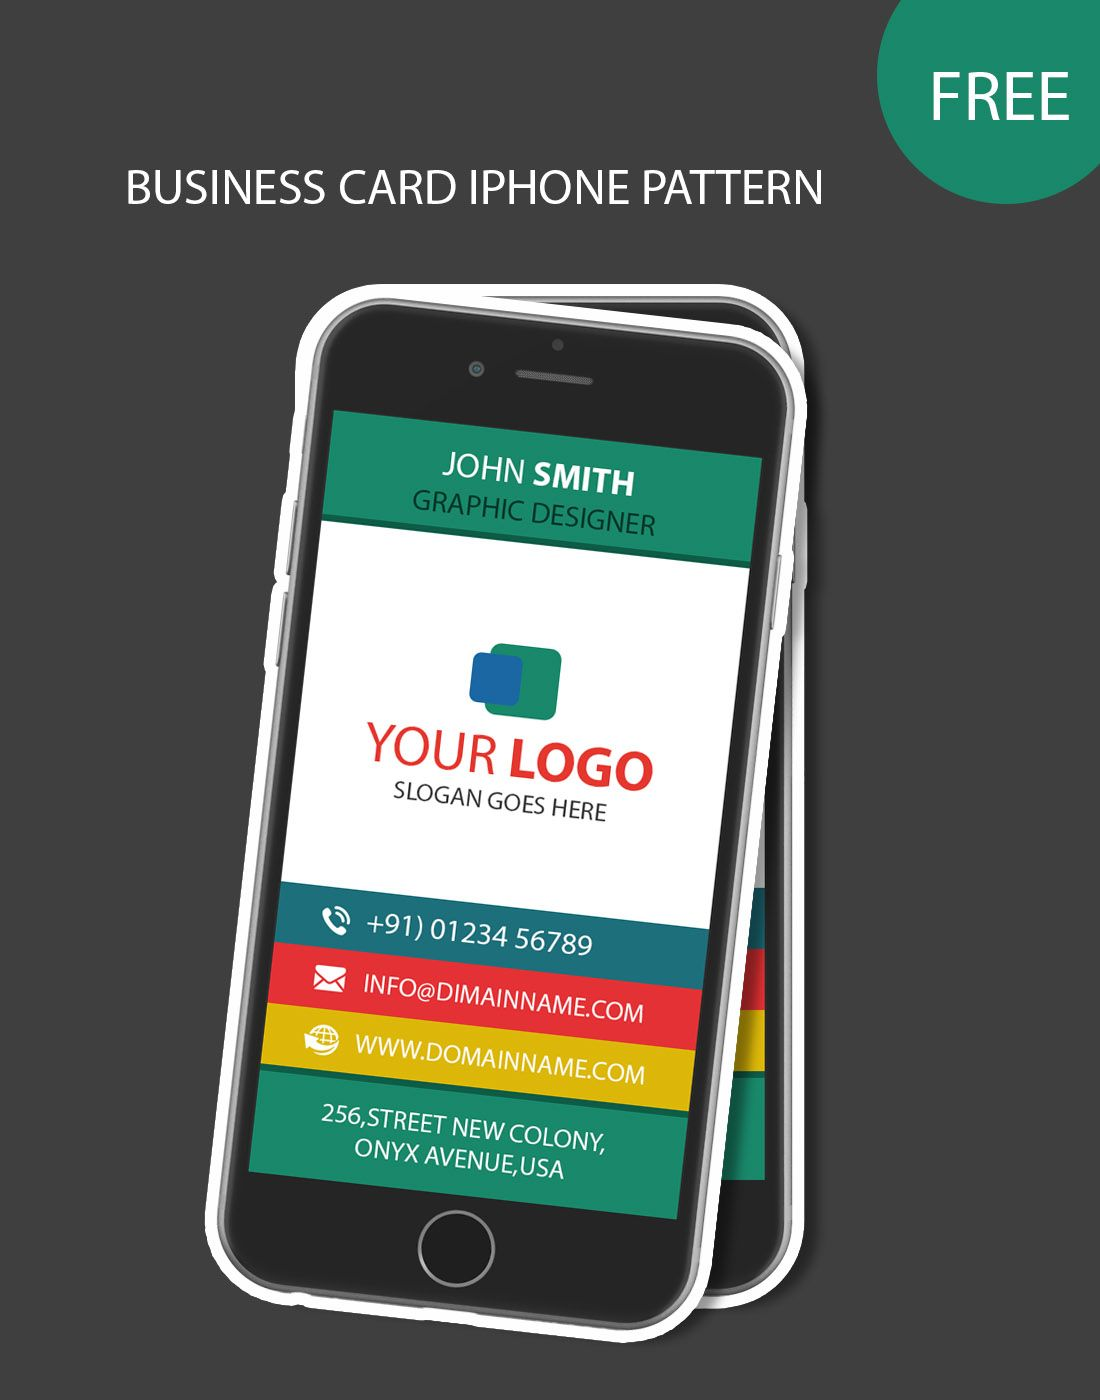 Iphone pattern business card business card templates pinterest iphone pattern business card free business card templates free business cards templates free wajeb Gallery